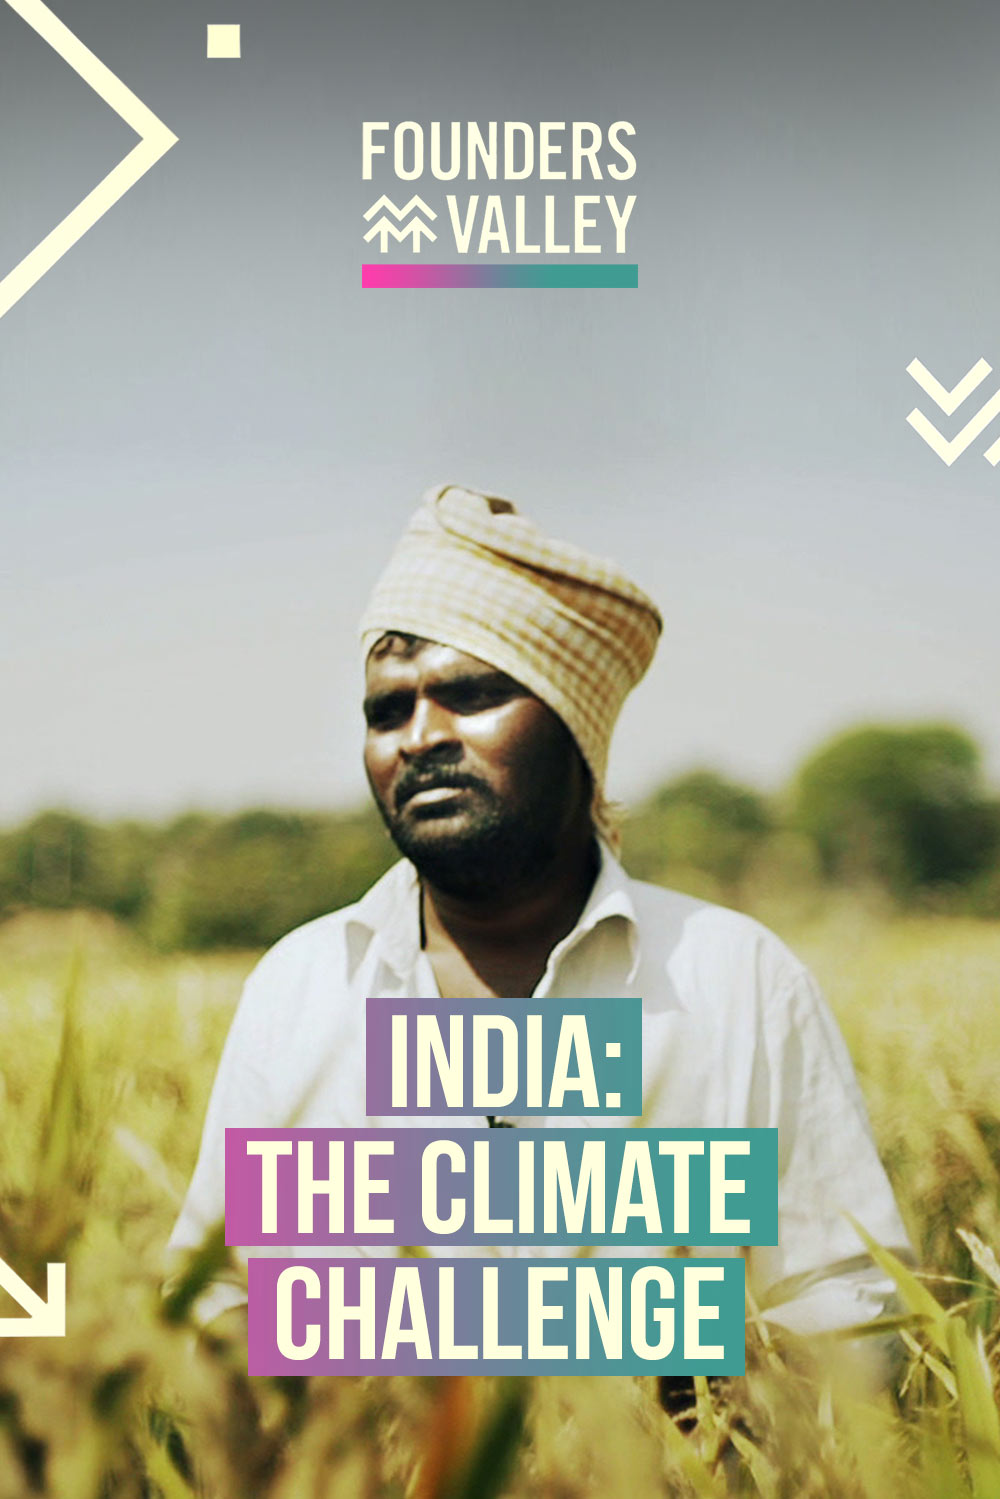 Founders' Valley: The Climate Challenge, India